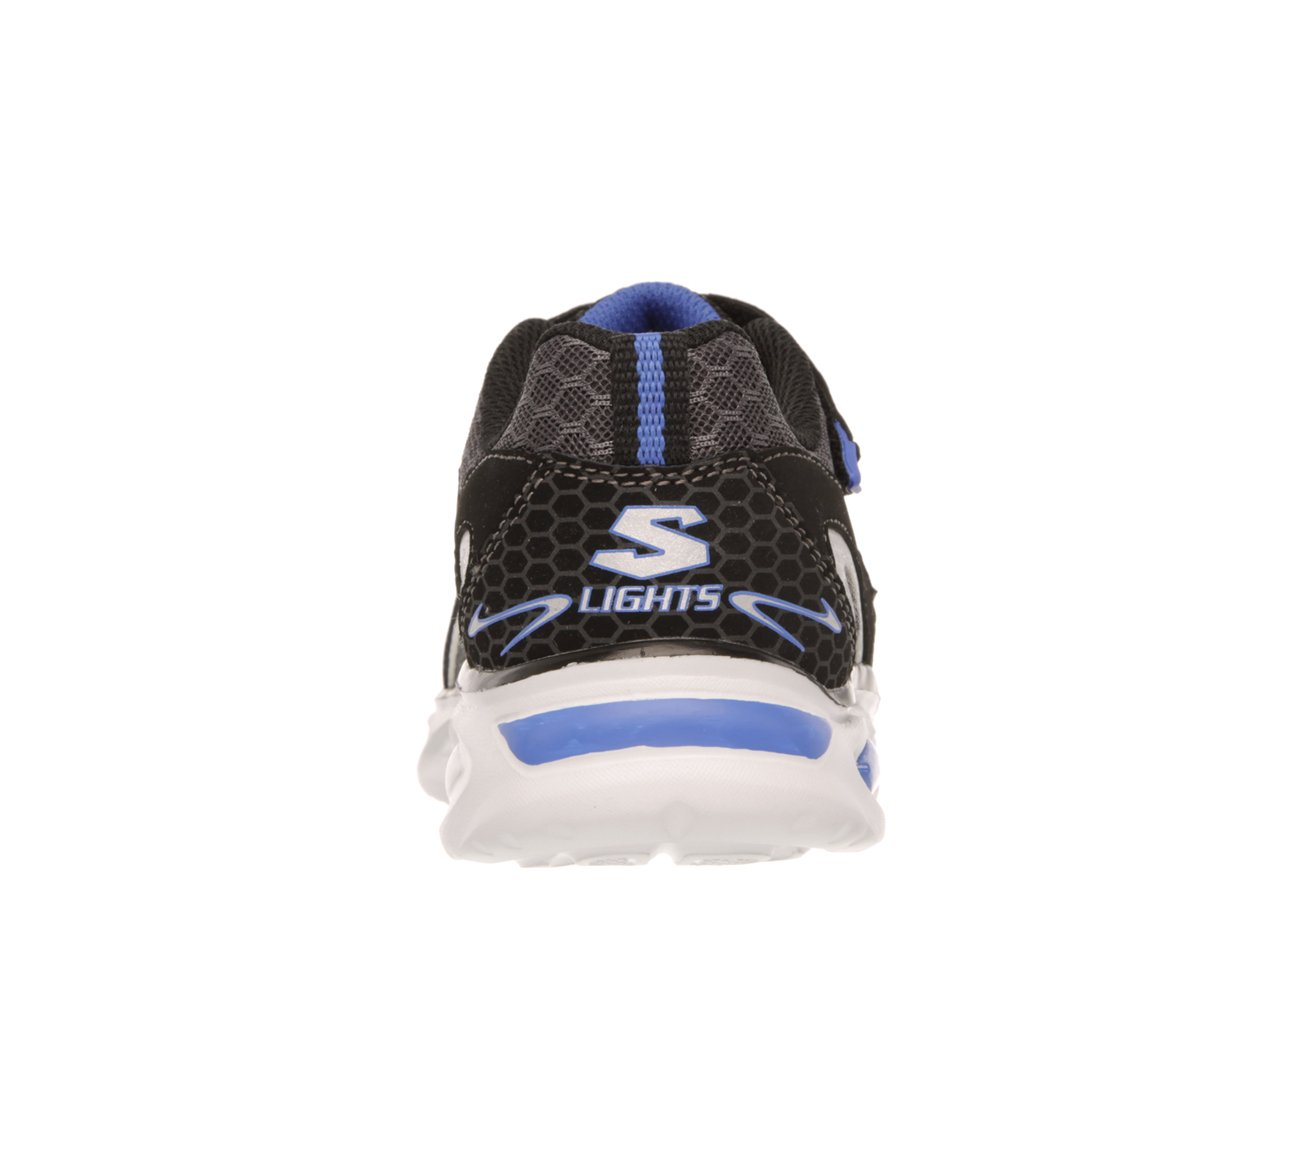 Skechers Boys' S Lights Ipox Rayz,Black/Royal,US 1.5 M